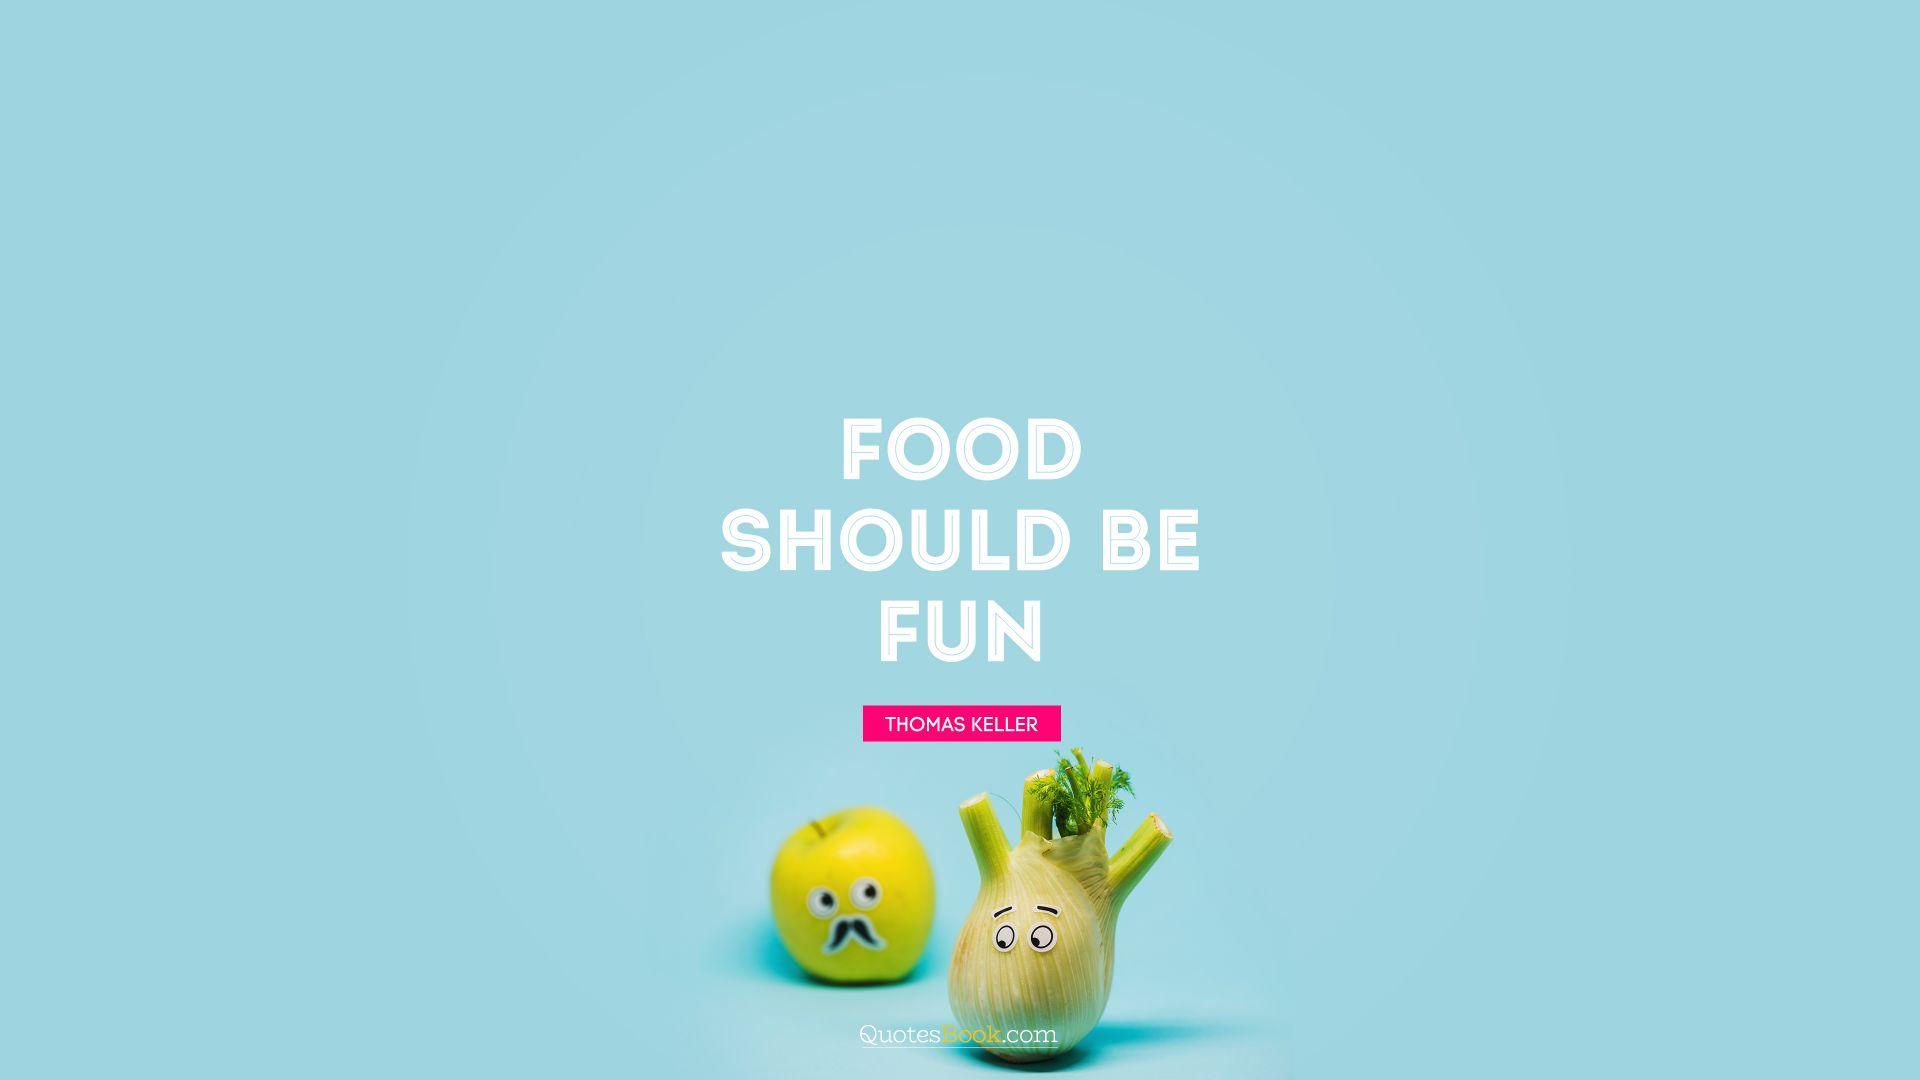 Food should be fun. - Quote by Thomas Keller